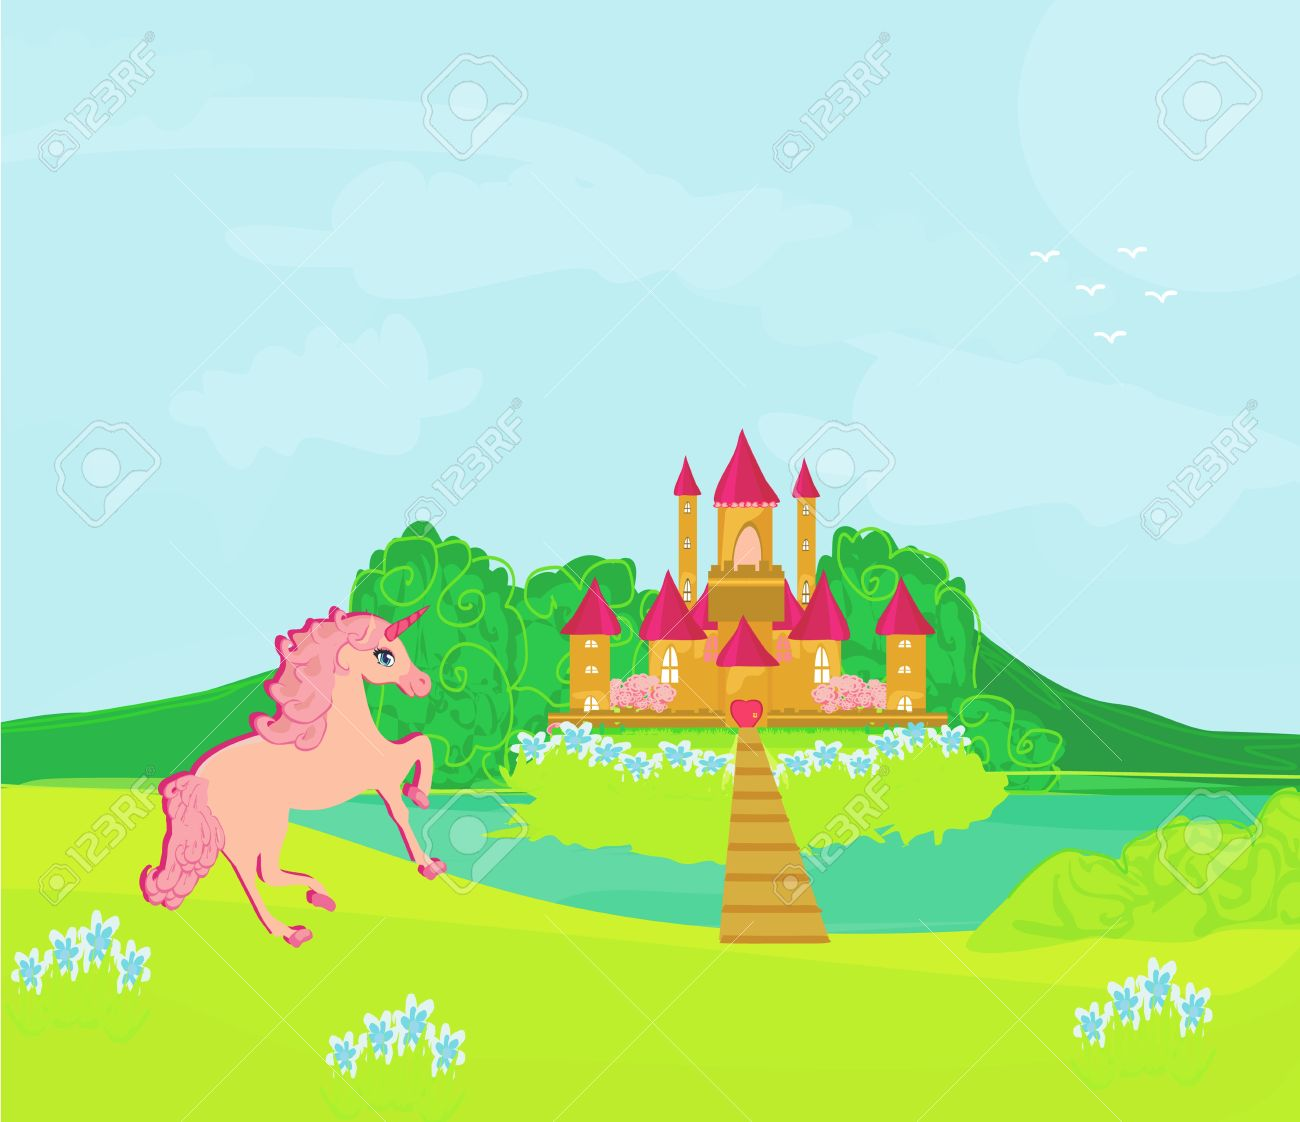 Fairytale Landscape With Magic Castle And Pink Unicorn Royalty.